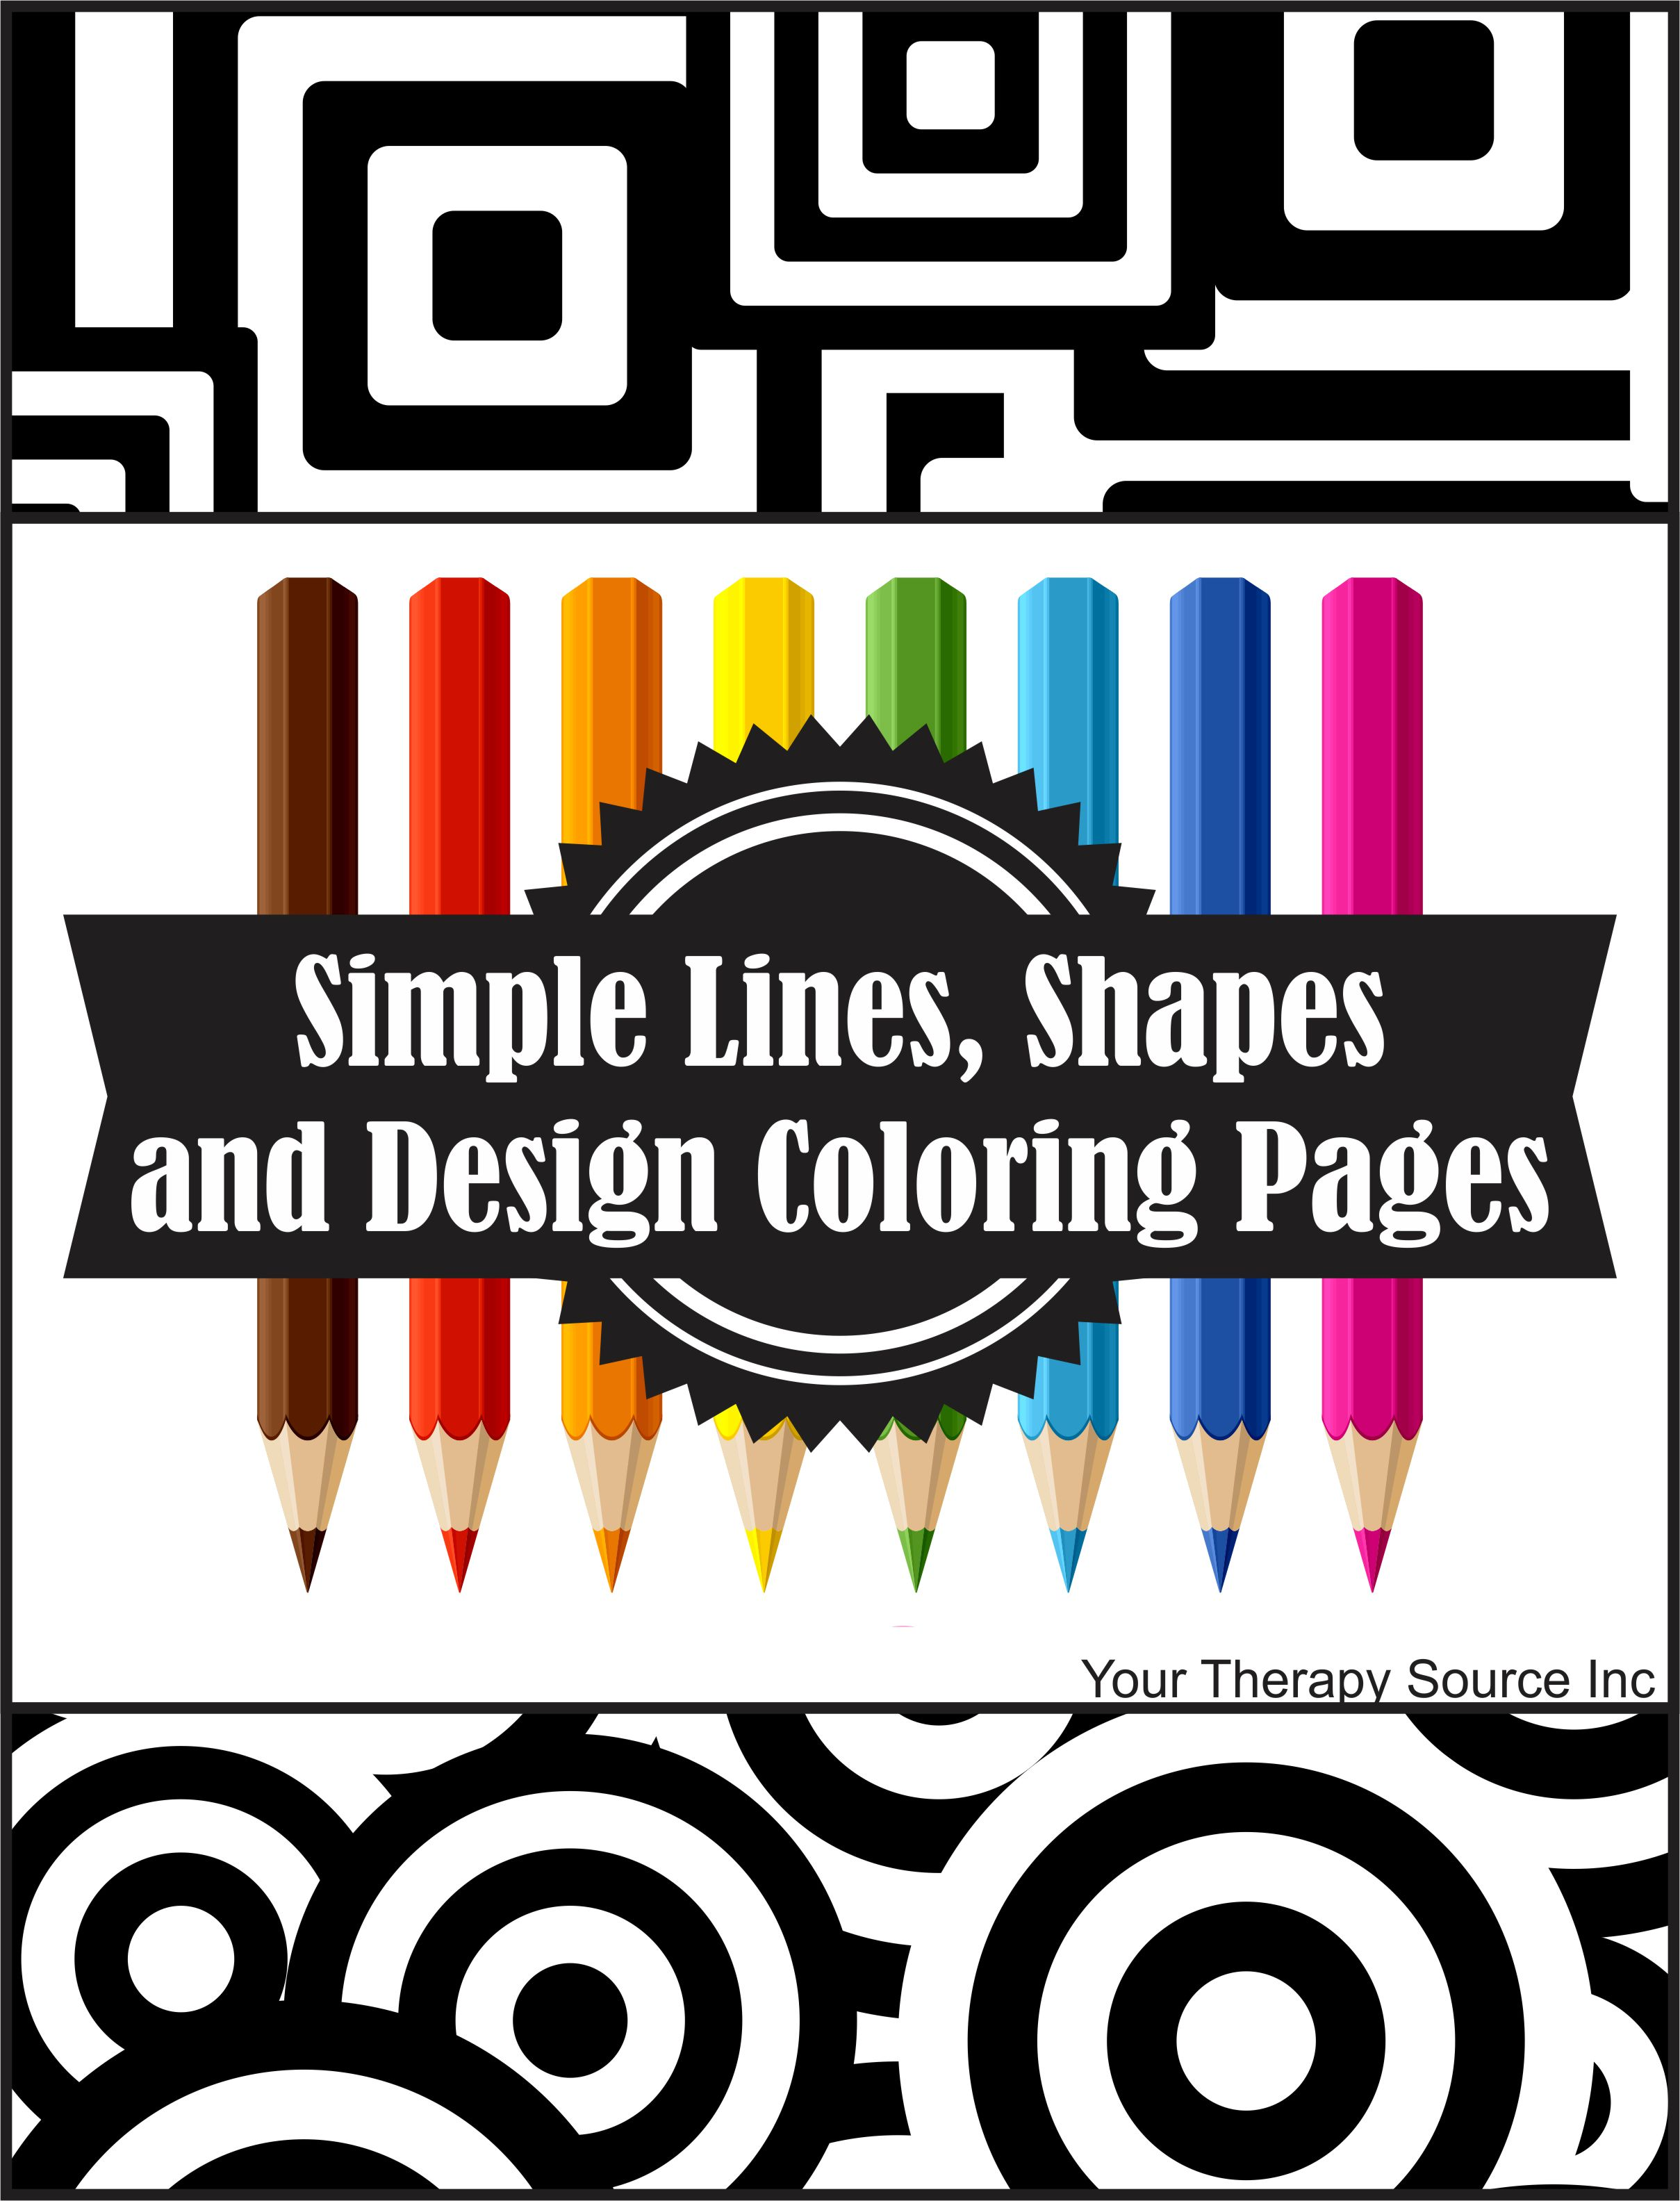 Simple Lines, Shapes and Design Coloring Pages - Your Therapy Source